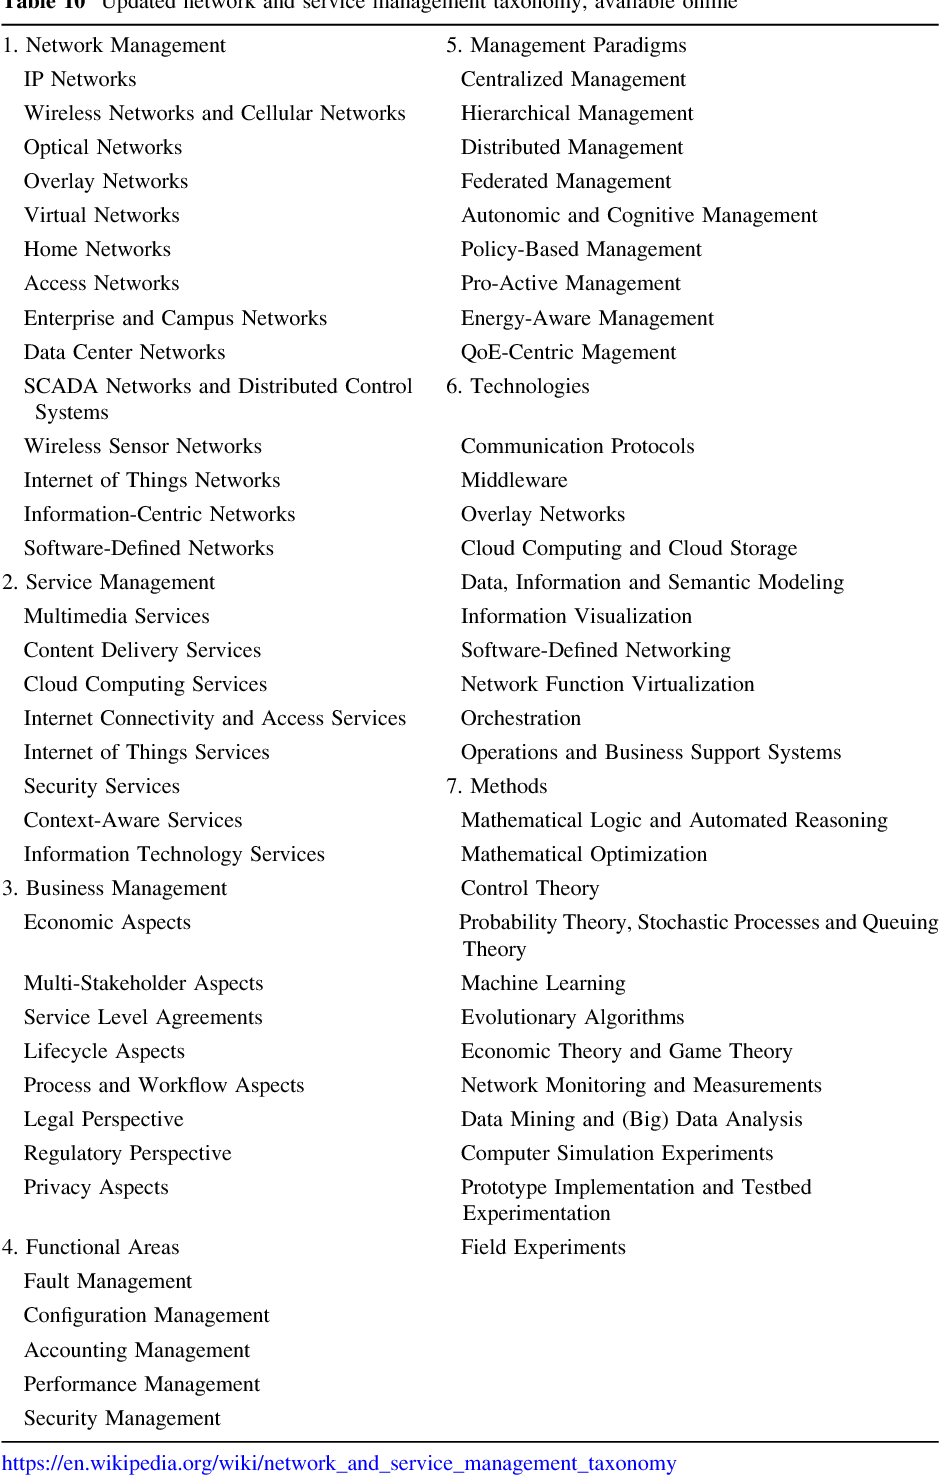 Updated Taxonomy For The Network And Service Management Research